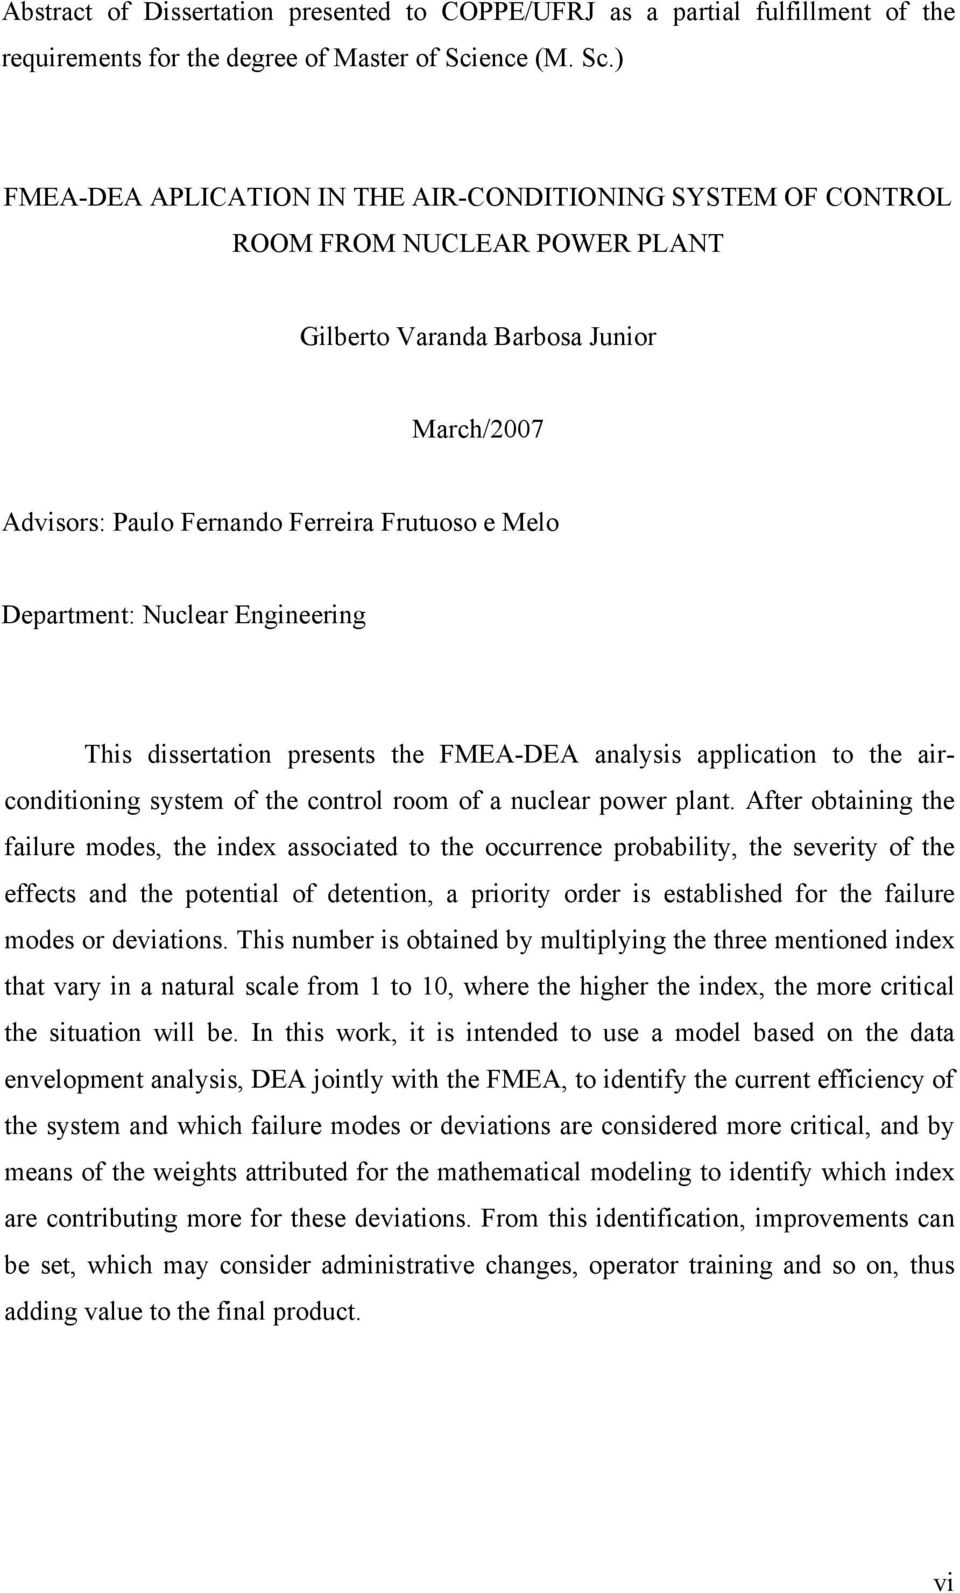 ) FMEA-DEA APLICATION IN THE AIR-CONDITIONING SYSTEM OF CONTROL ROOM FROM NUCLEAR POWER PLANT Gilberto Varanda Barbosa Junior March/2007 Advisors: Paulo Fernando Ferreira Frutuoso e Melo Department: